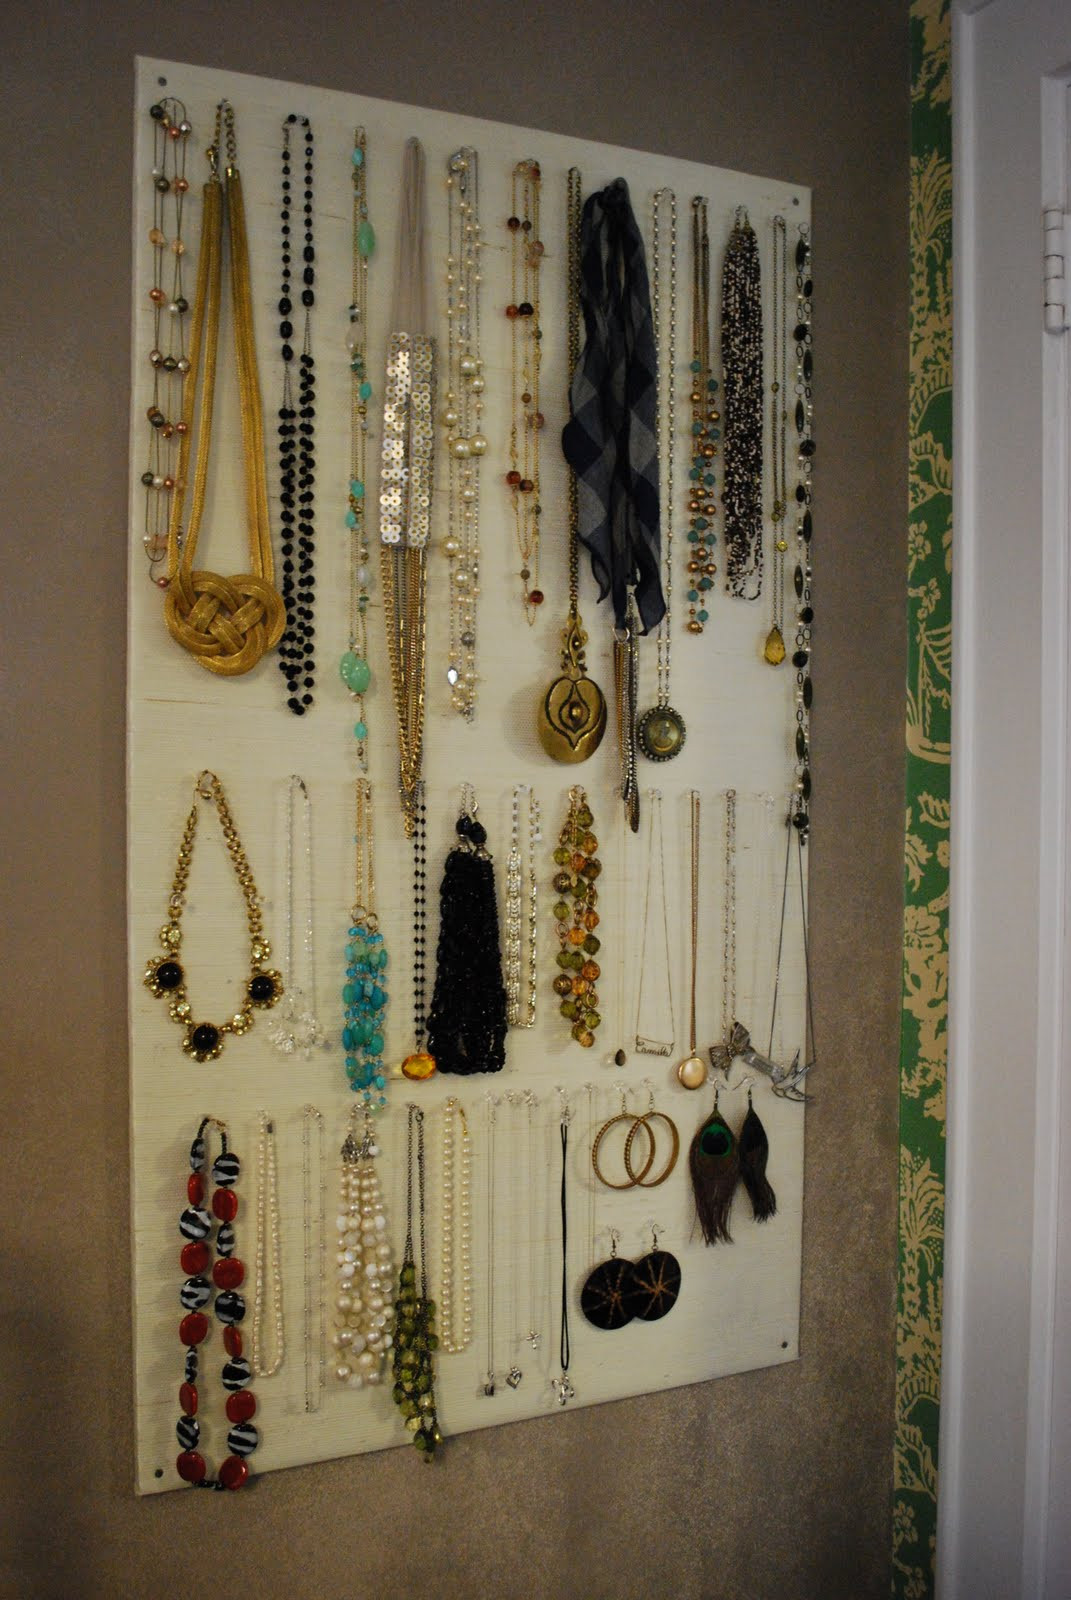 Best ideas about DIY Necklace Organizer . Save or Pin High Heeled Foot in the Door DIY Homasote Jewelry Organizer Now.